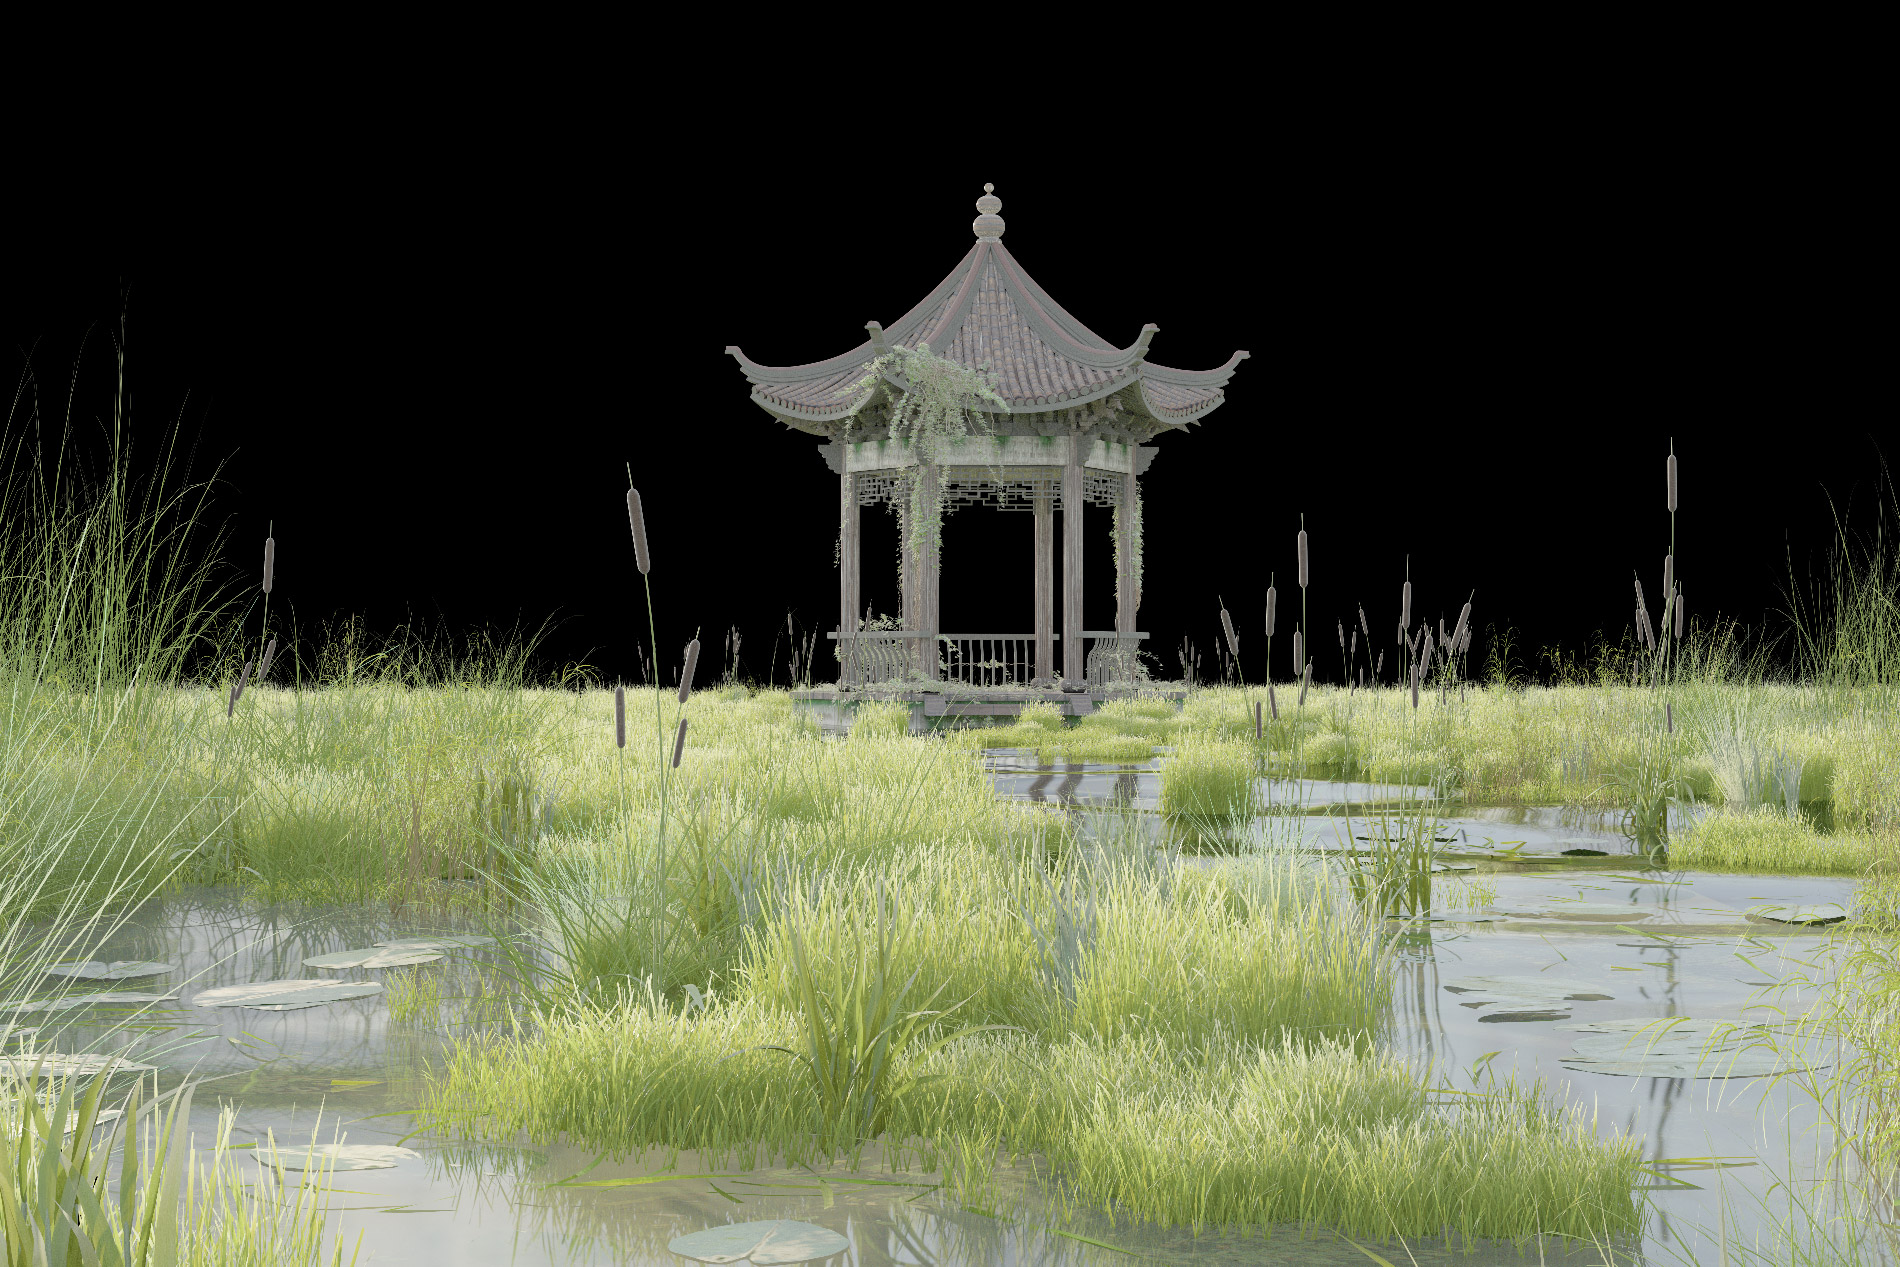 Raw render from vray